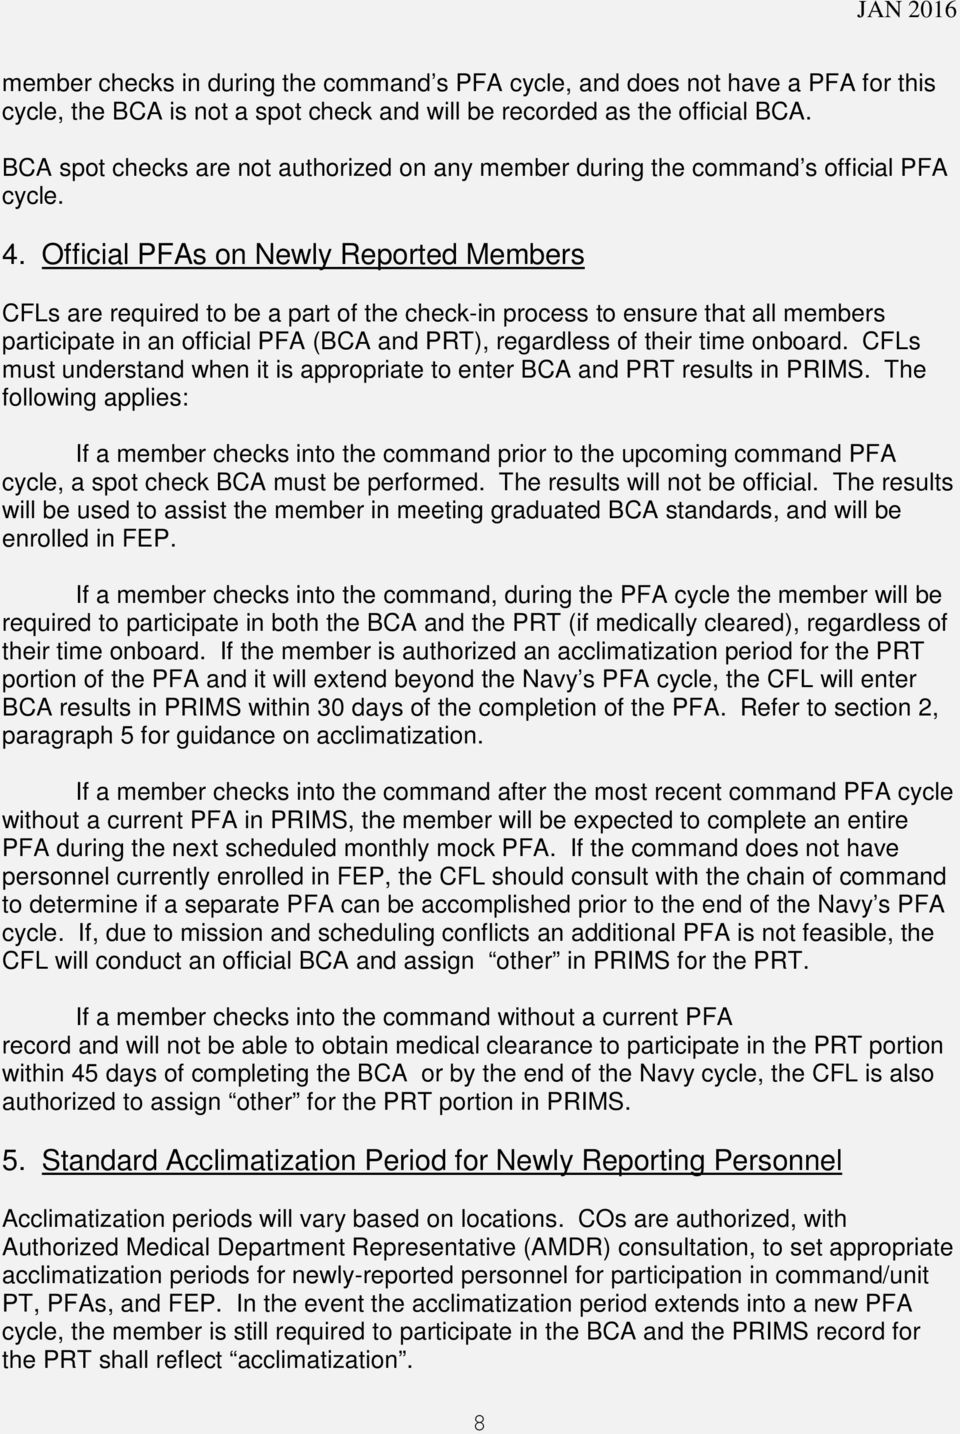 Official PFAs on Newly Reported Members CFLs are required to be a part of the check-in process to ensure that all members participate in an official PFA (BCA and PRT), regardless of their time